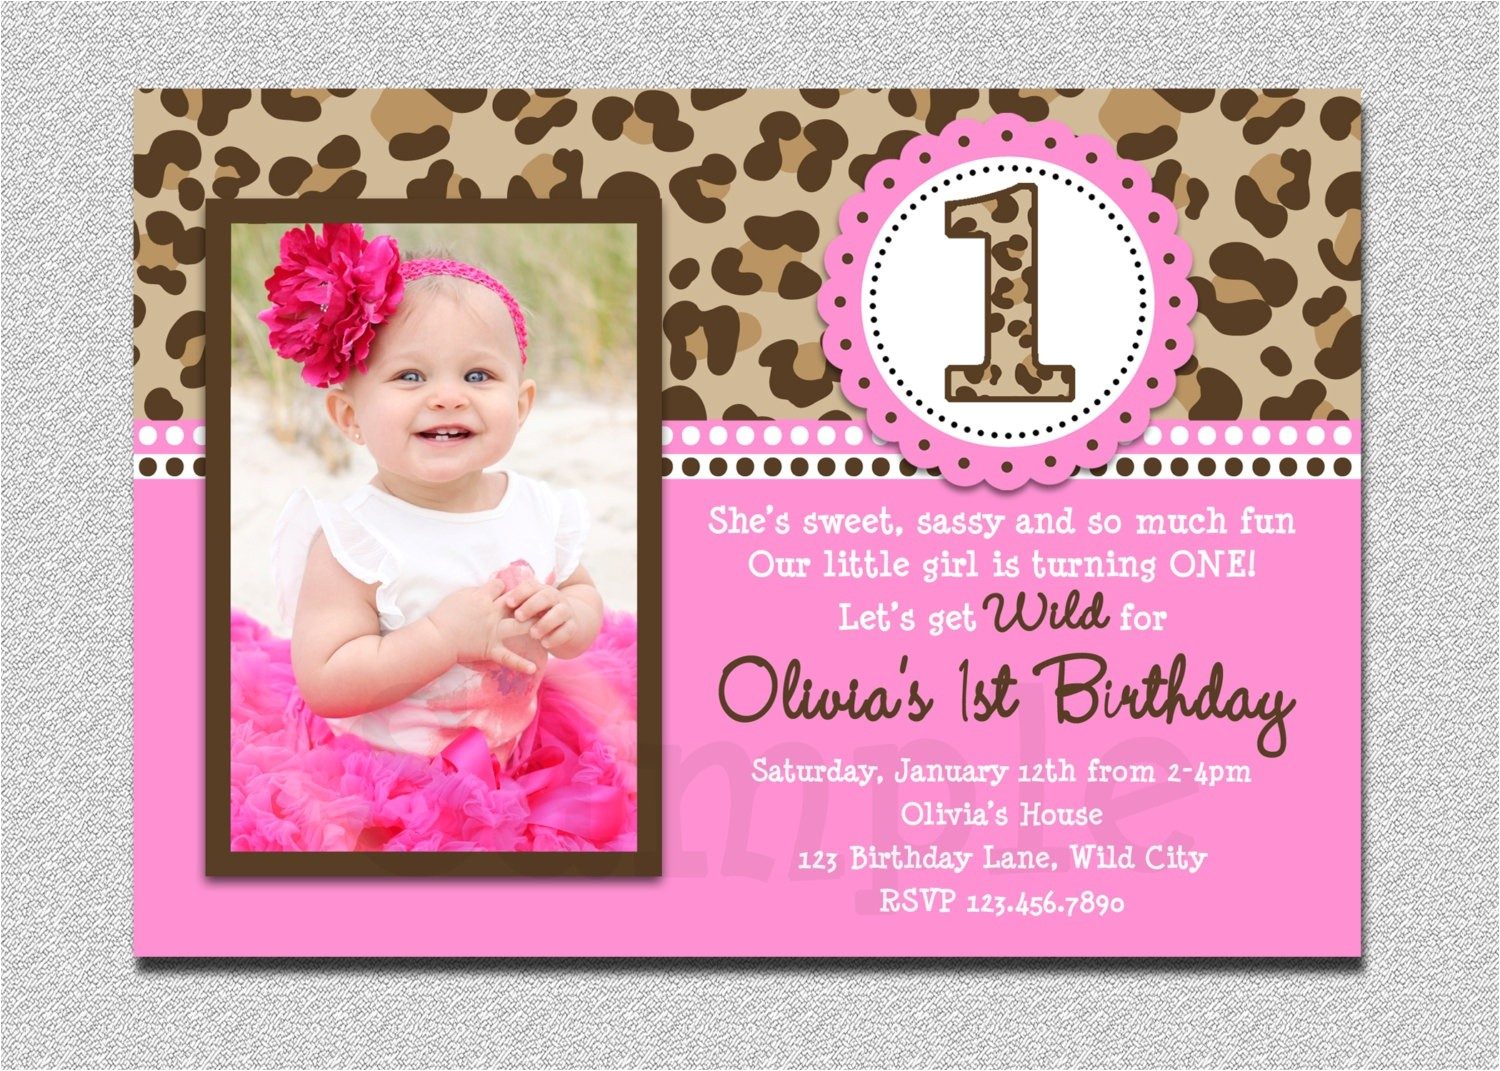 tips for choosing walgreens party invitations free winsome layout for walgreens birthday invitations 80th birthday party invitations silverlininginvitations